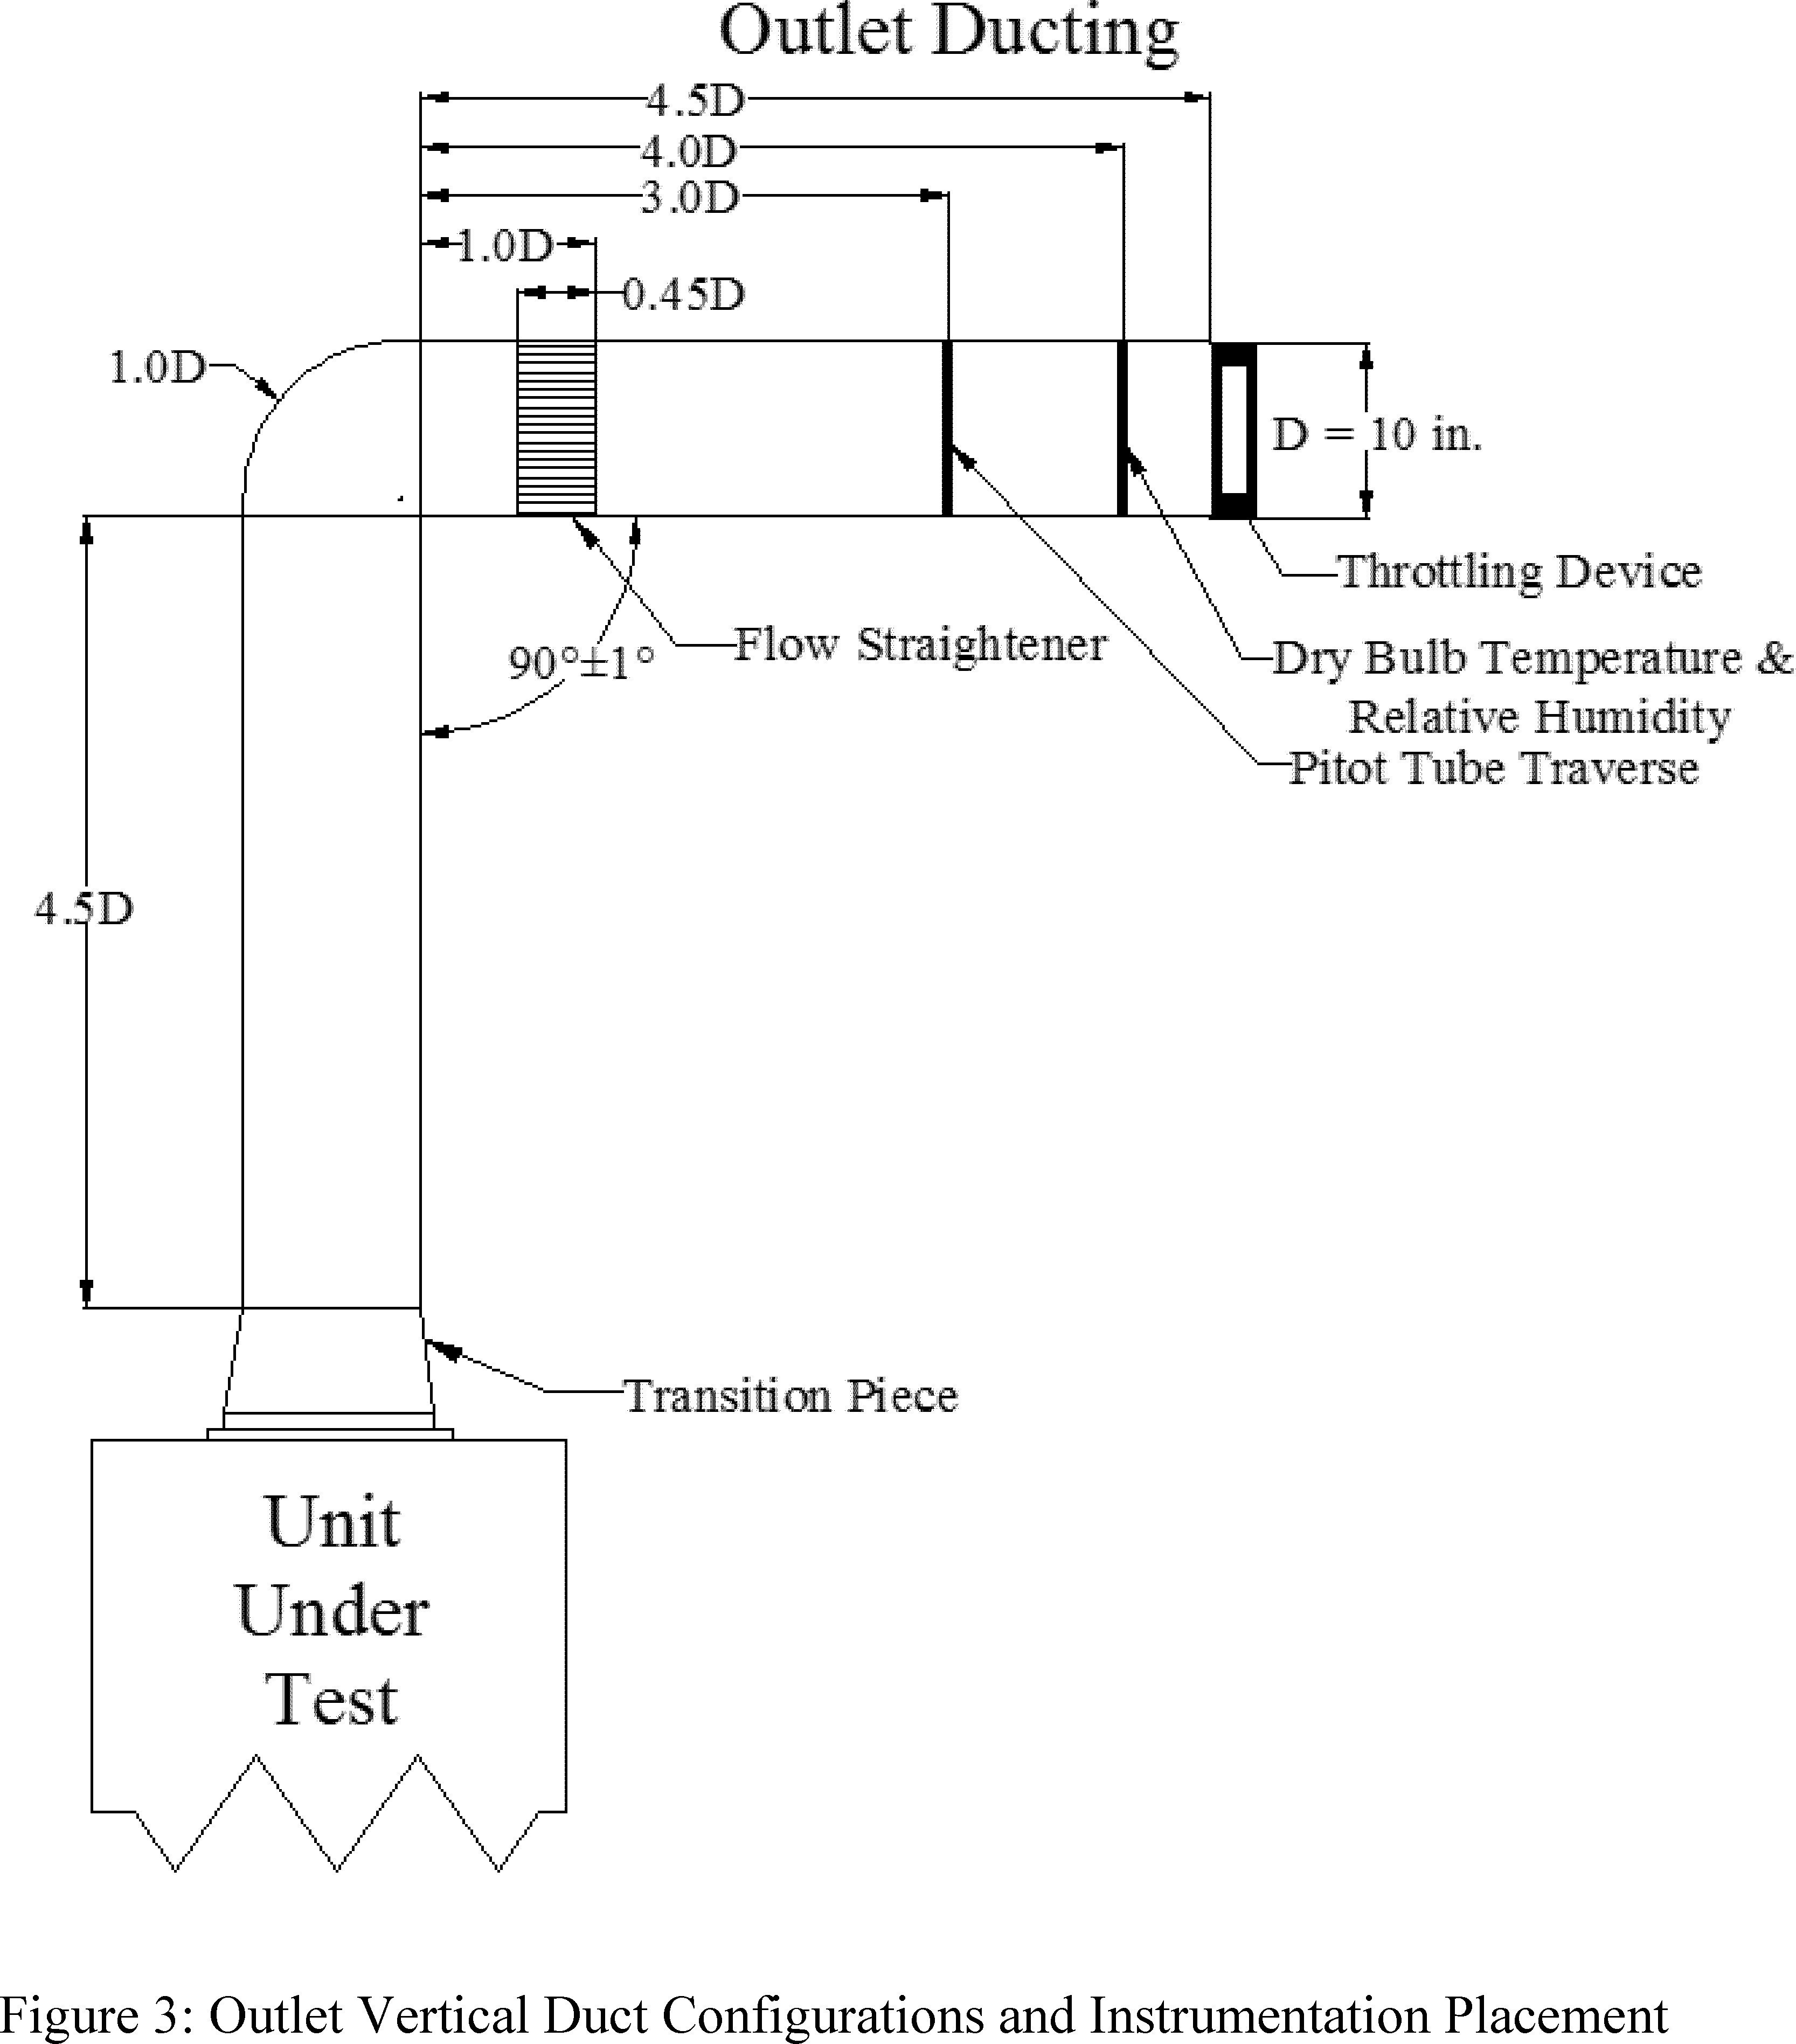 Home Electrical Outlet Wiring Diagram Save Wiring Diagram for Home Outlet Save Wiring Diagrams for Residential